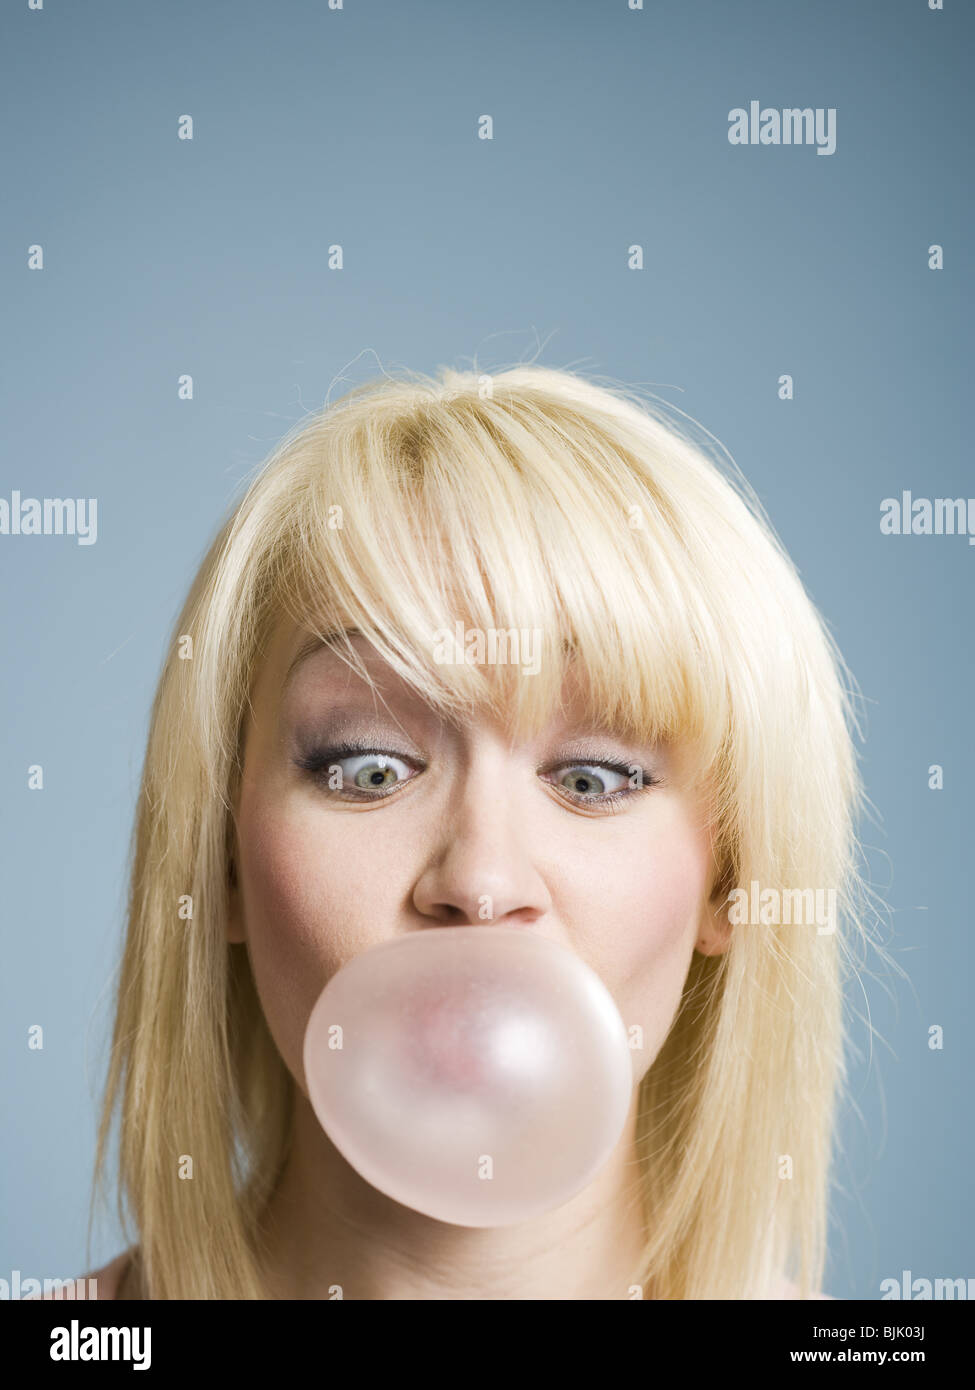 Woman blowing bubbles avec chewing-gum Photo Stock